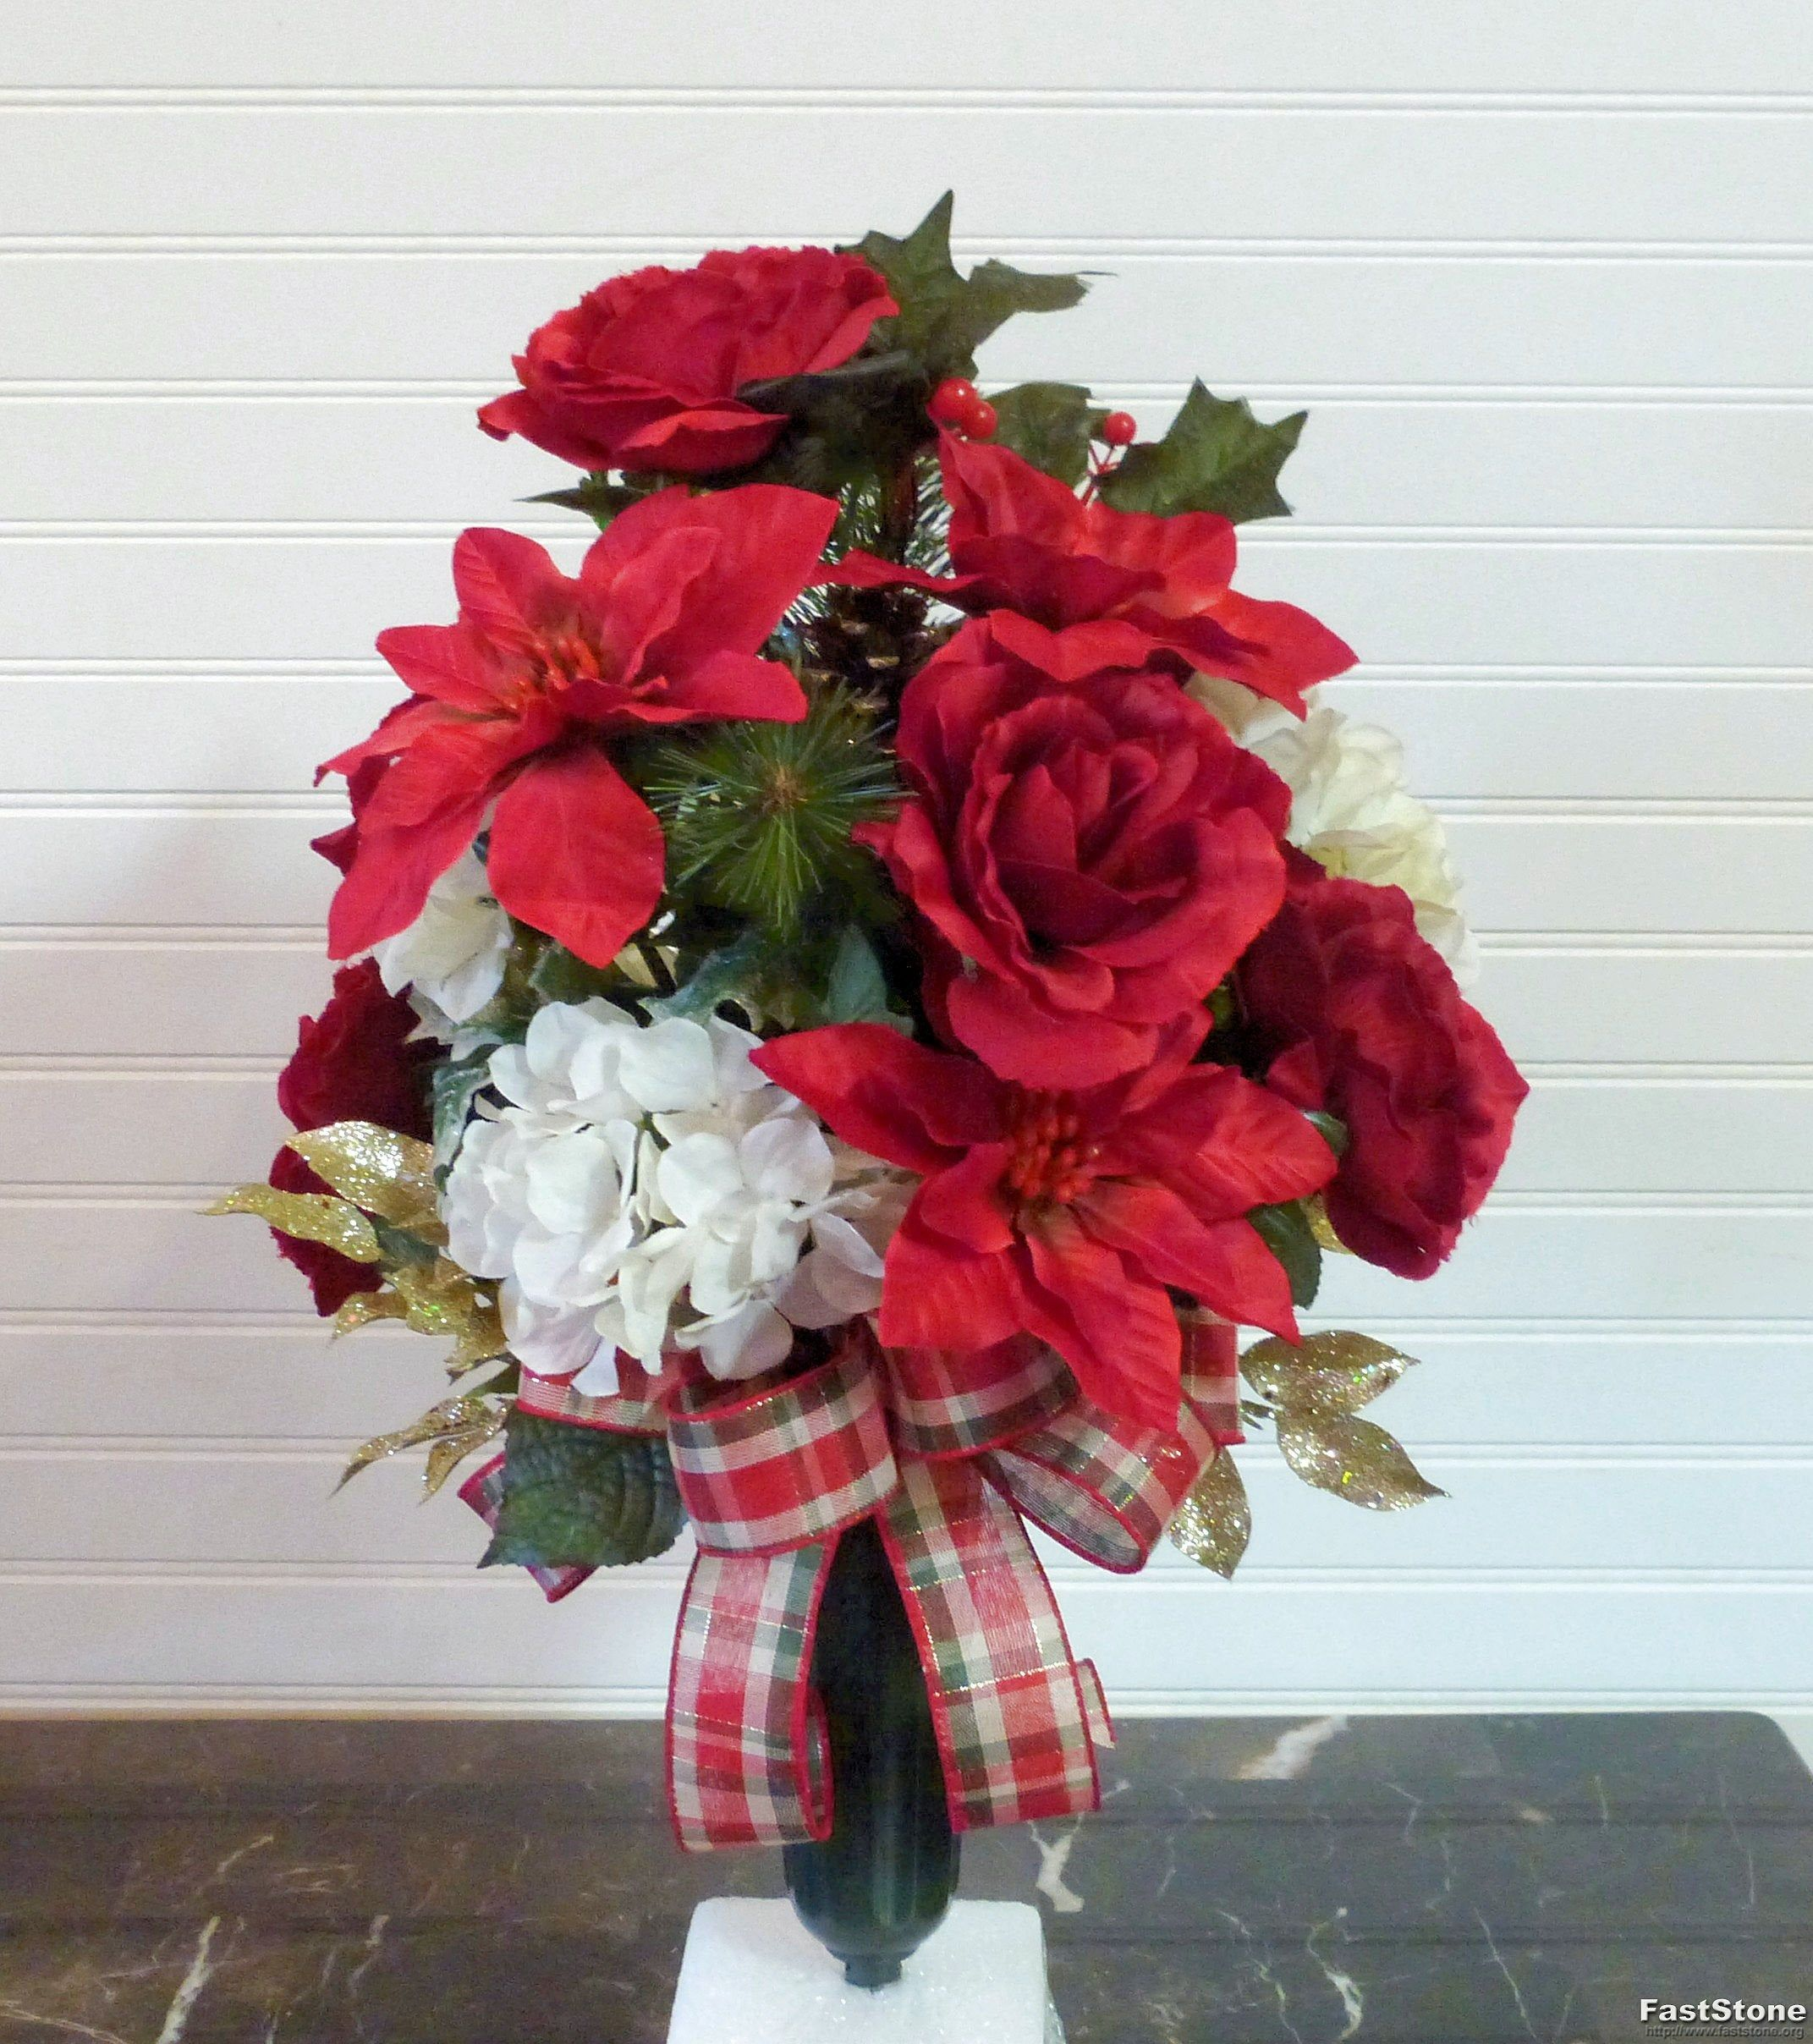 Red Poinsettia Cemetery Vase, Christmas Cemetery